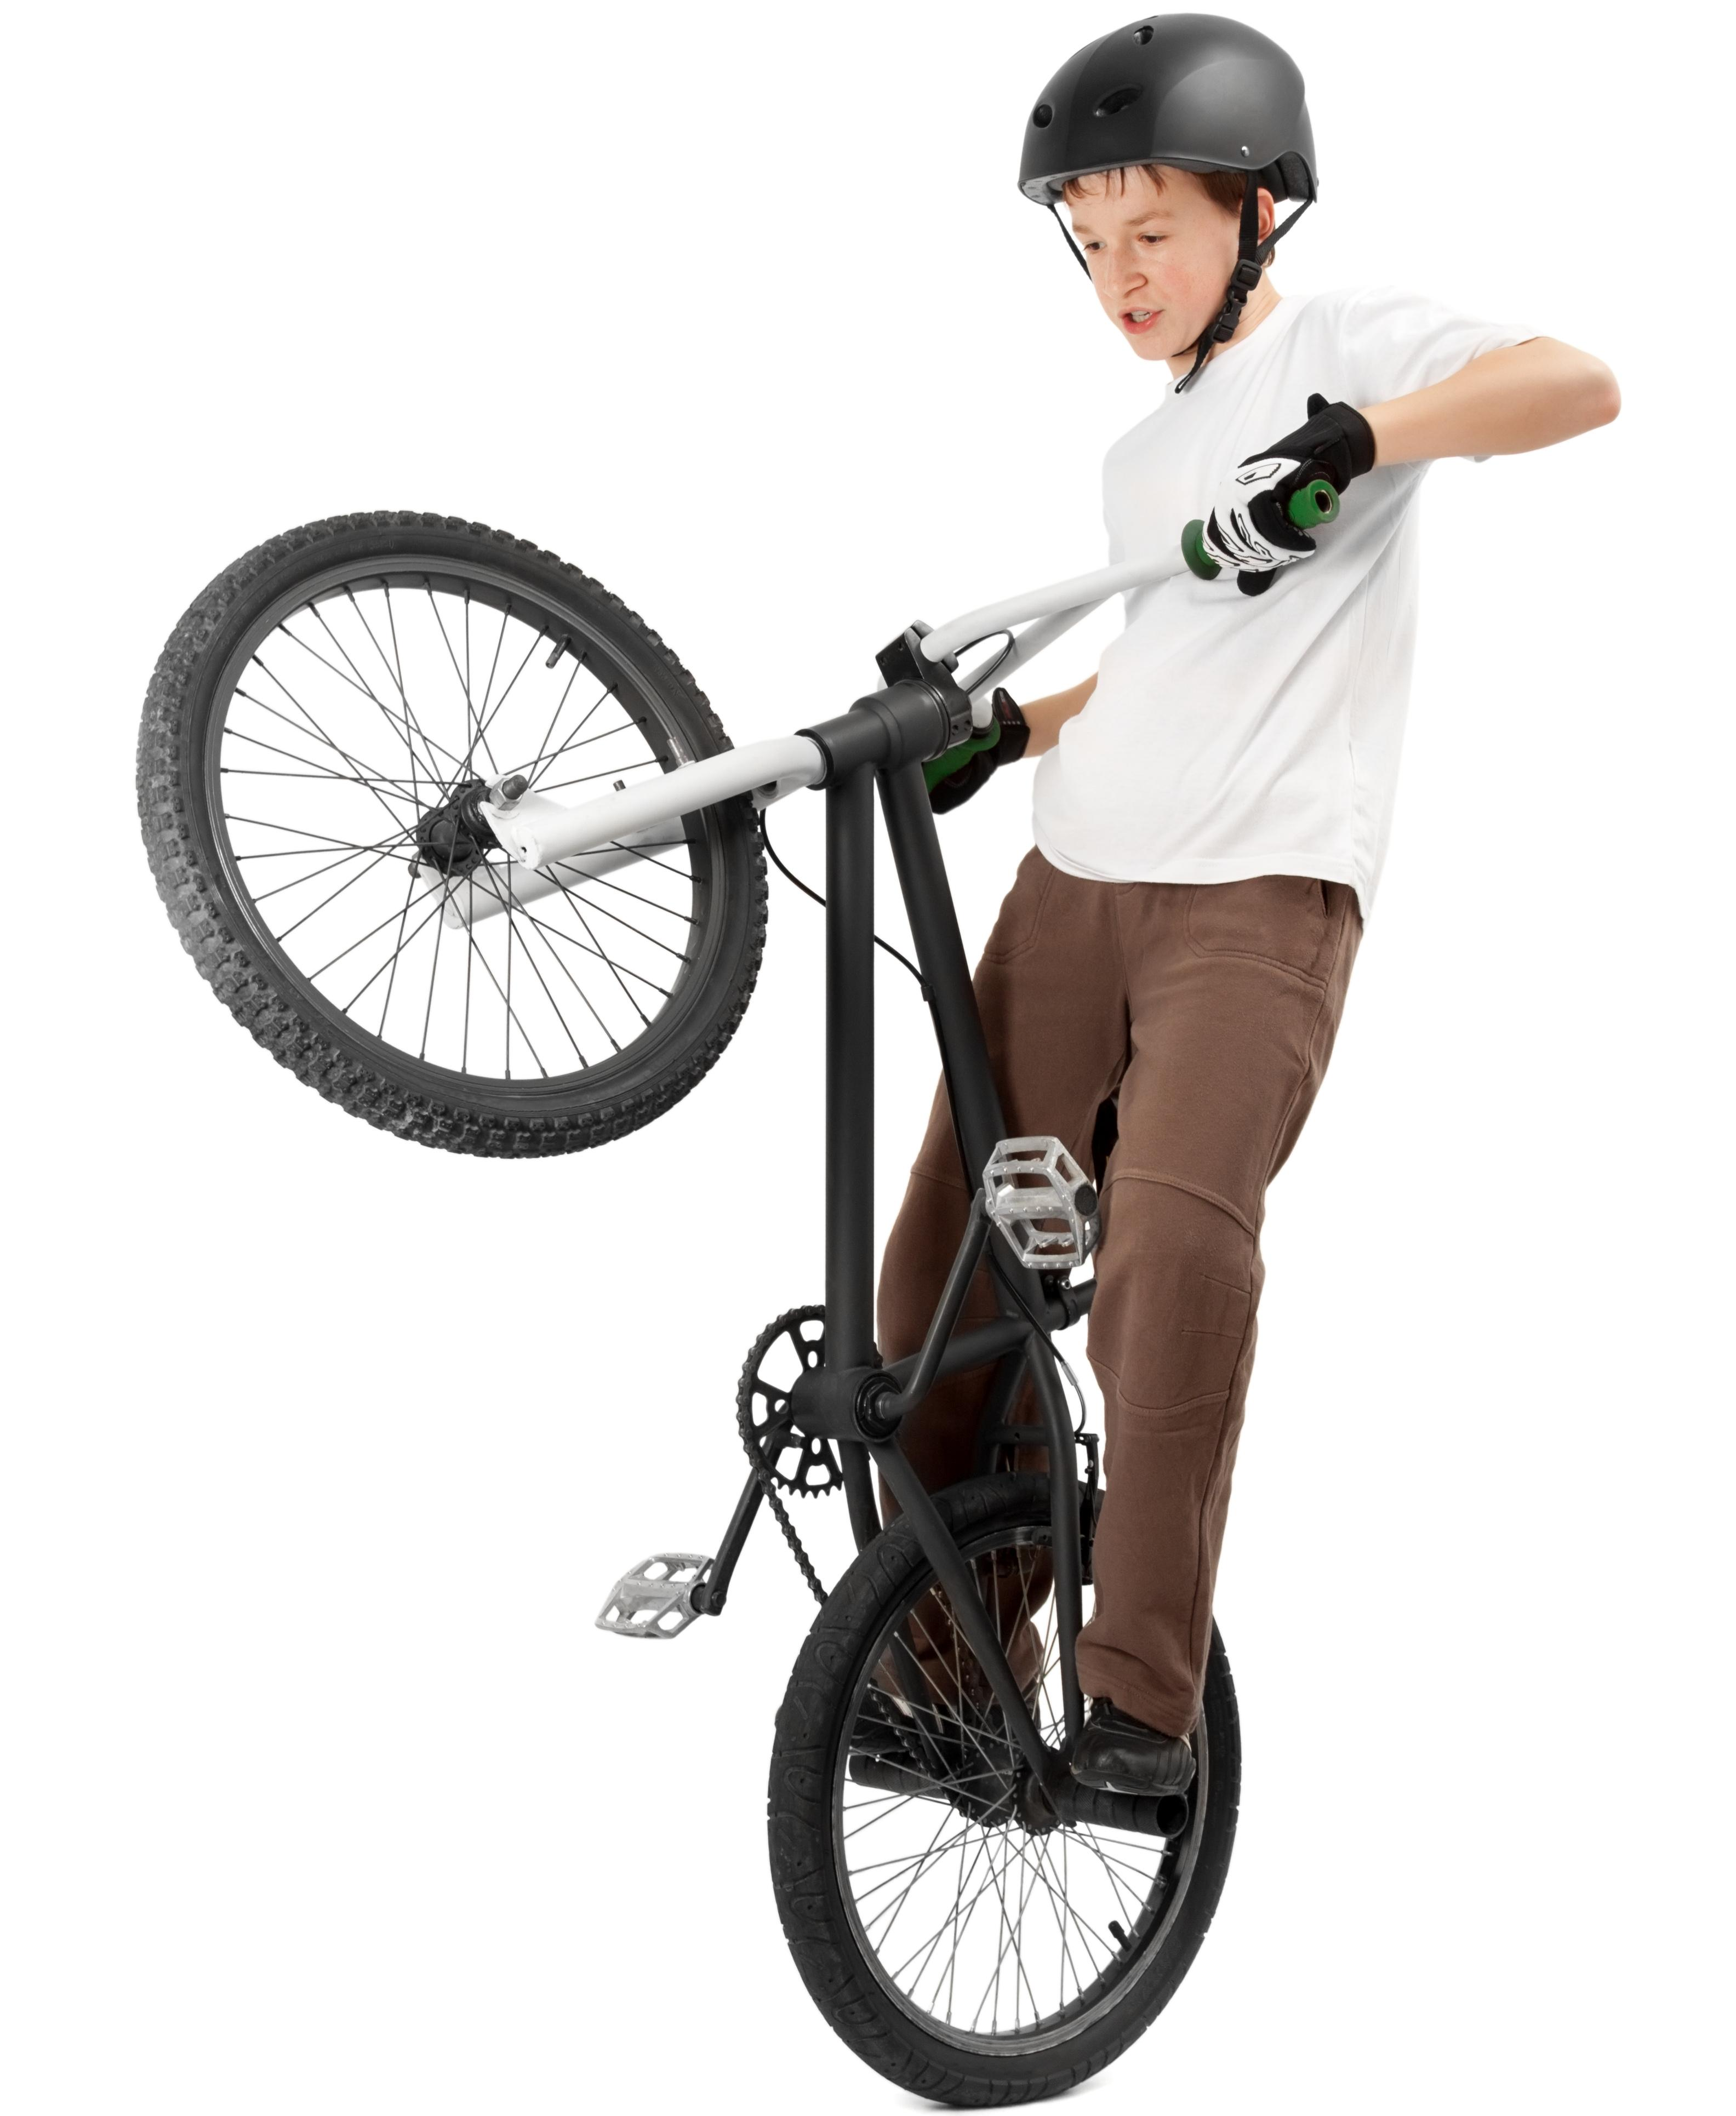 Fitness tips: handy hints for BMX beginners